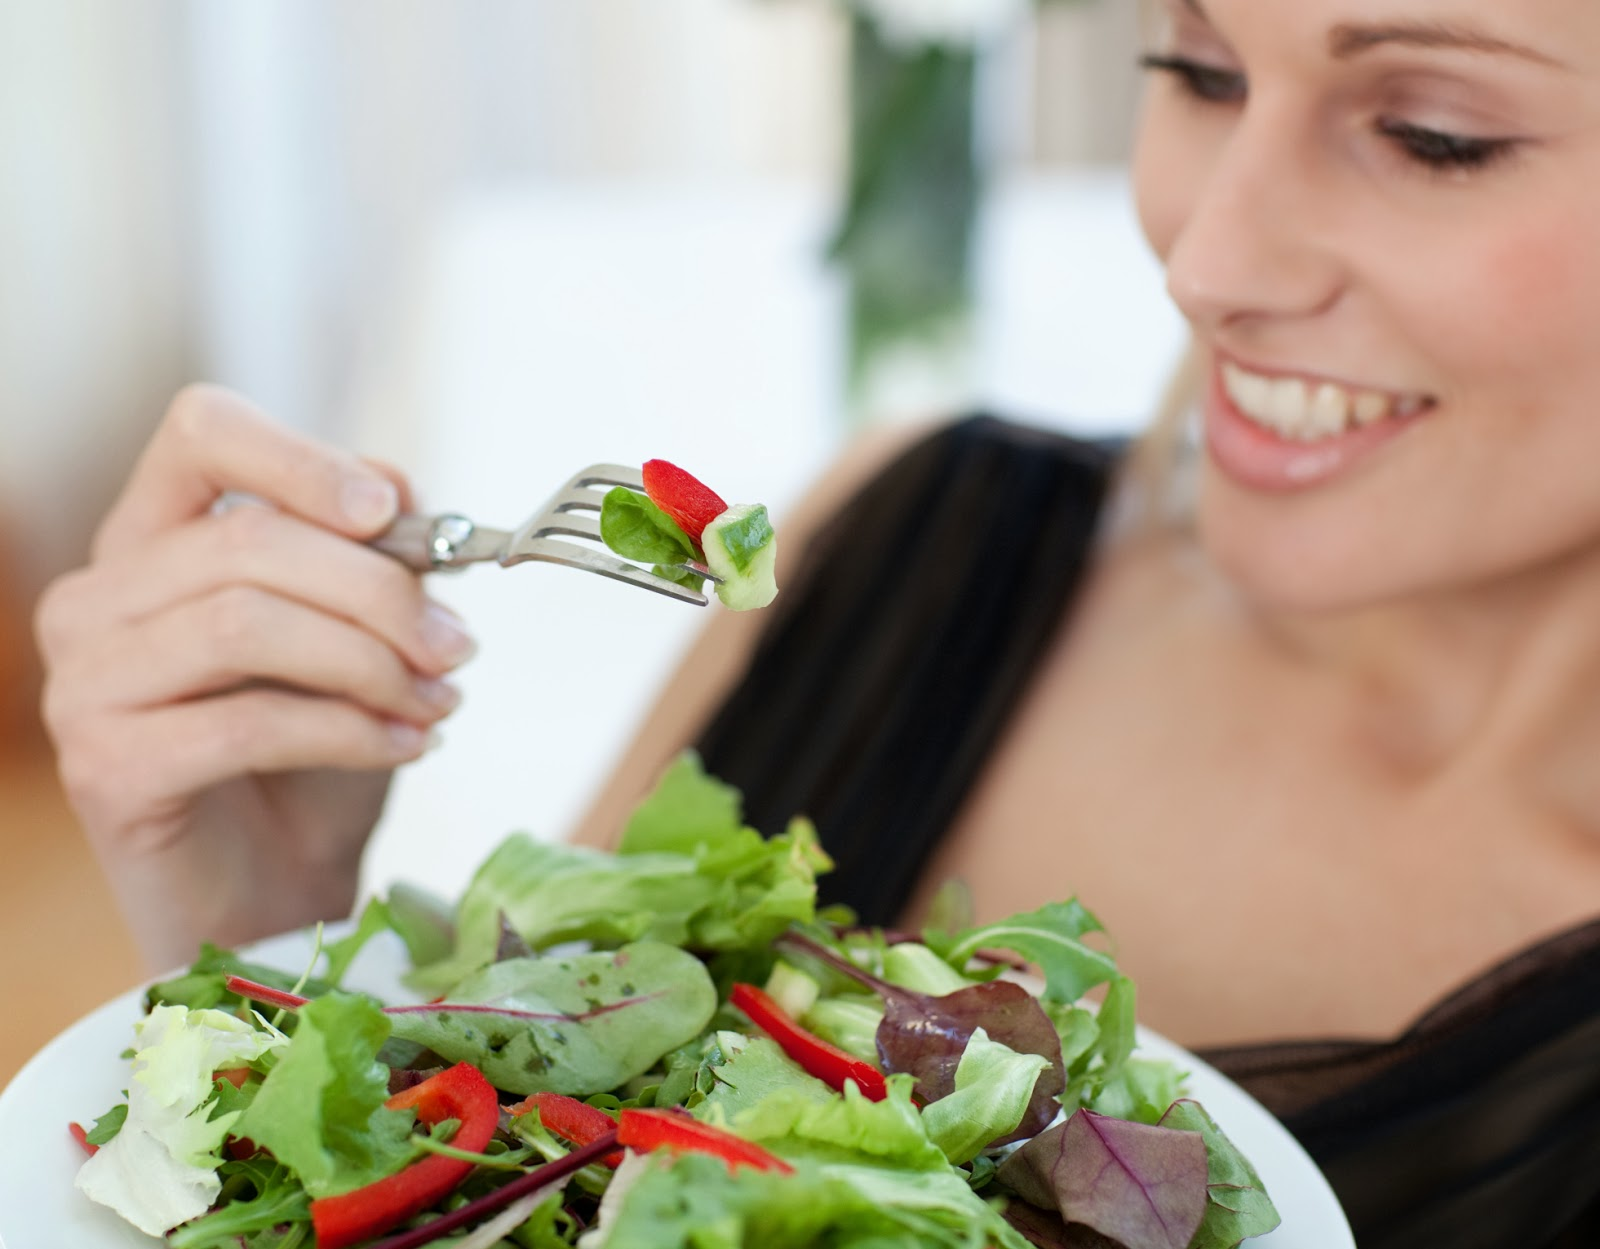 Close-up of a smiling woman eating a salad